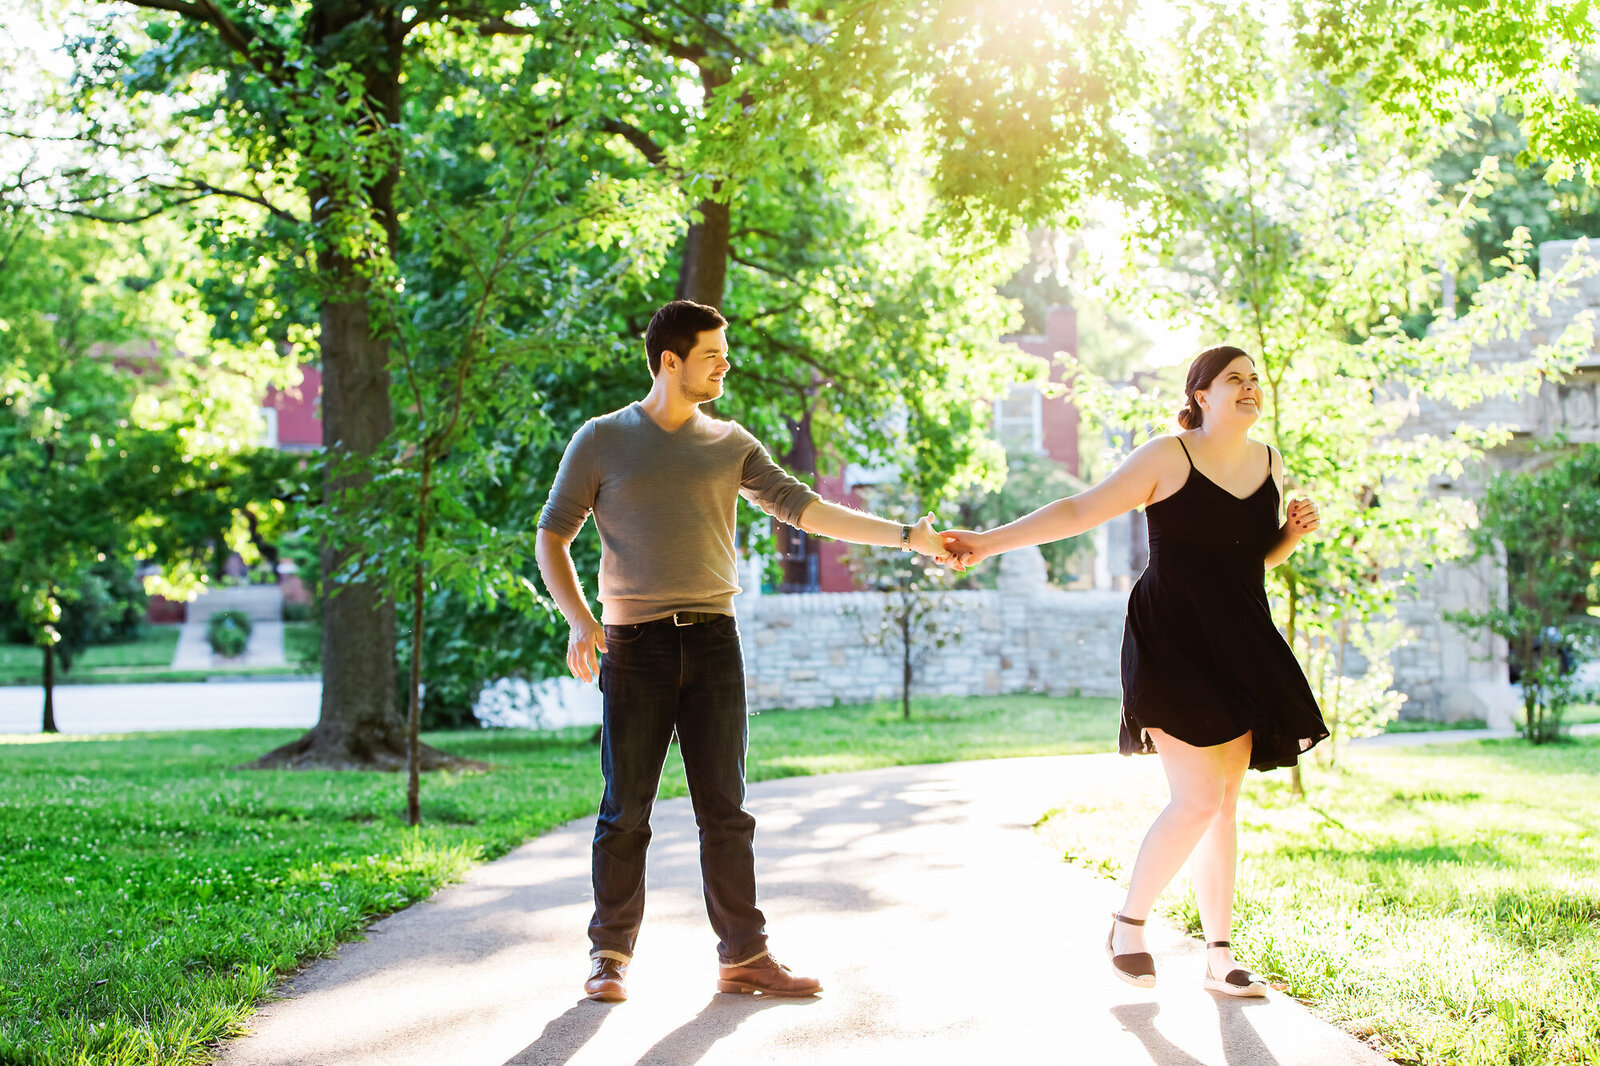 Happy engaged couple dancing together in Tower Grove Park in St. Louis